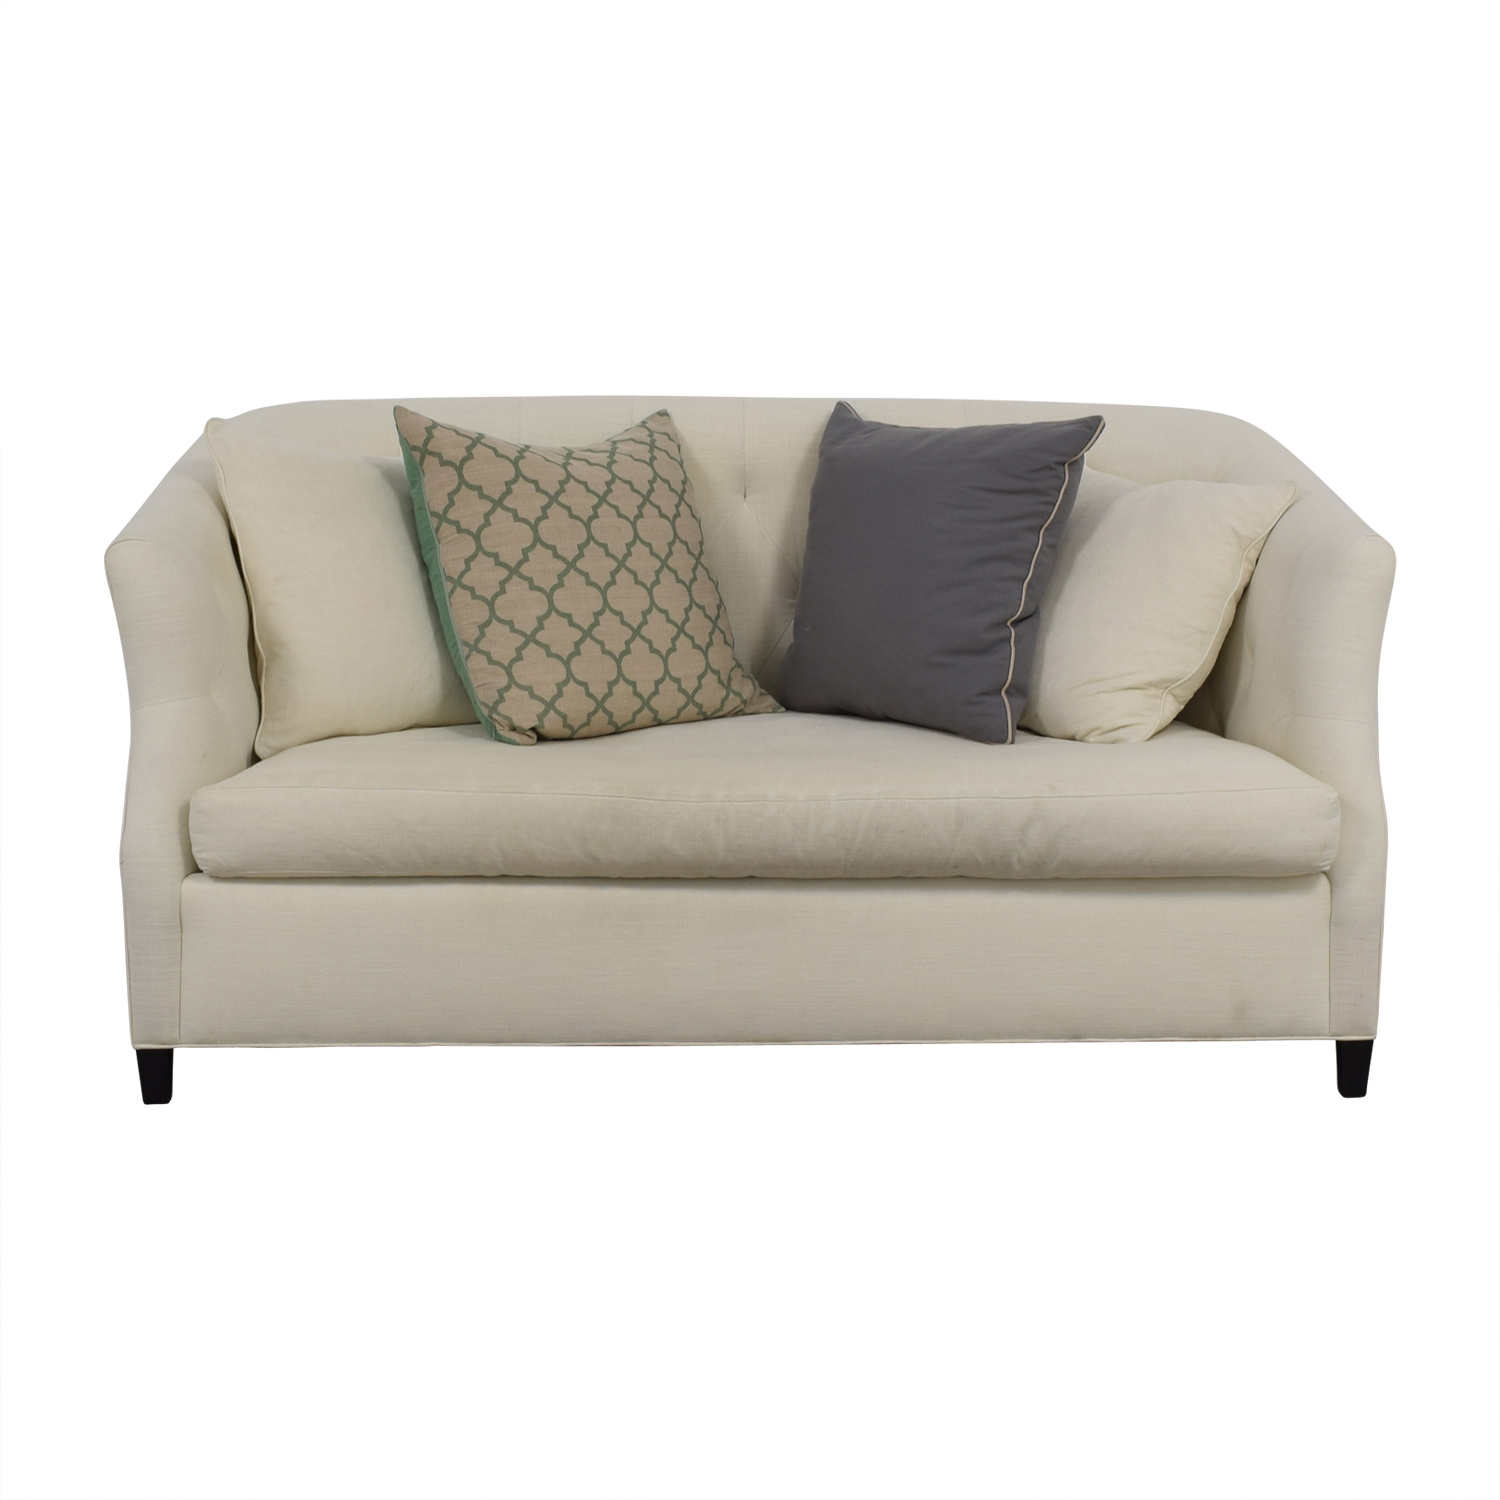 Safavieh Safavieh Tufted Off White Sette Sofa nj